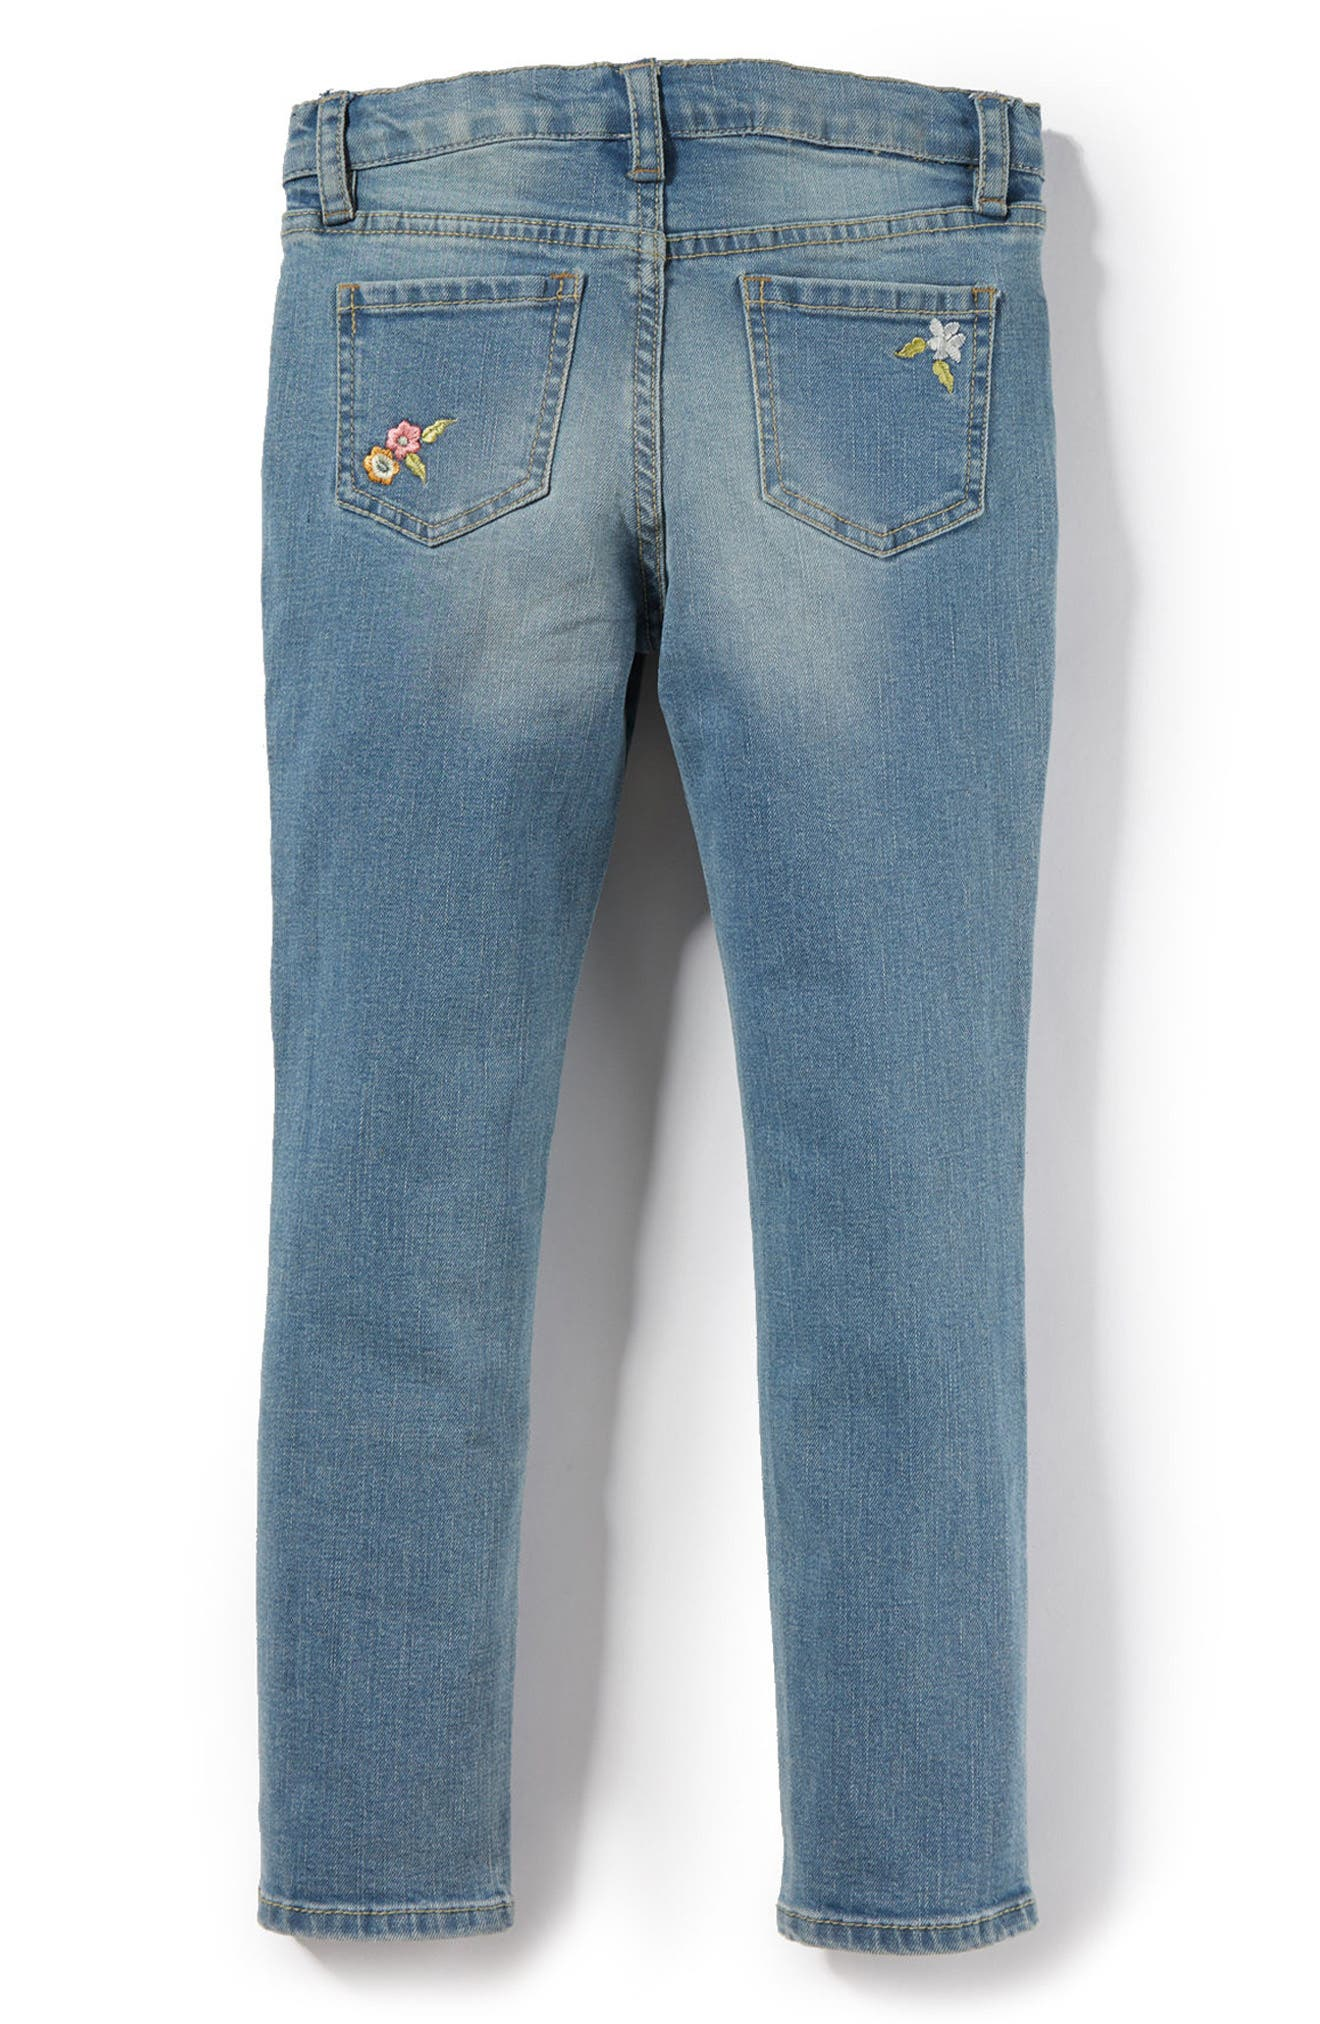 Taylor Embroidered Skinny Jeans,                             Alternate thumbnail 2, color,                             Medium Authentic